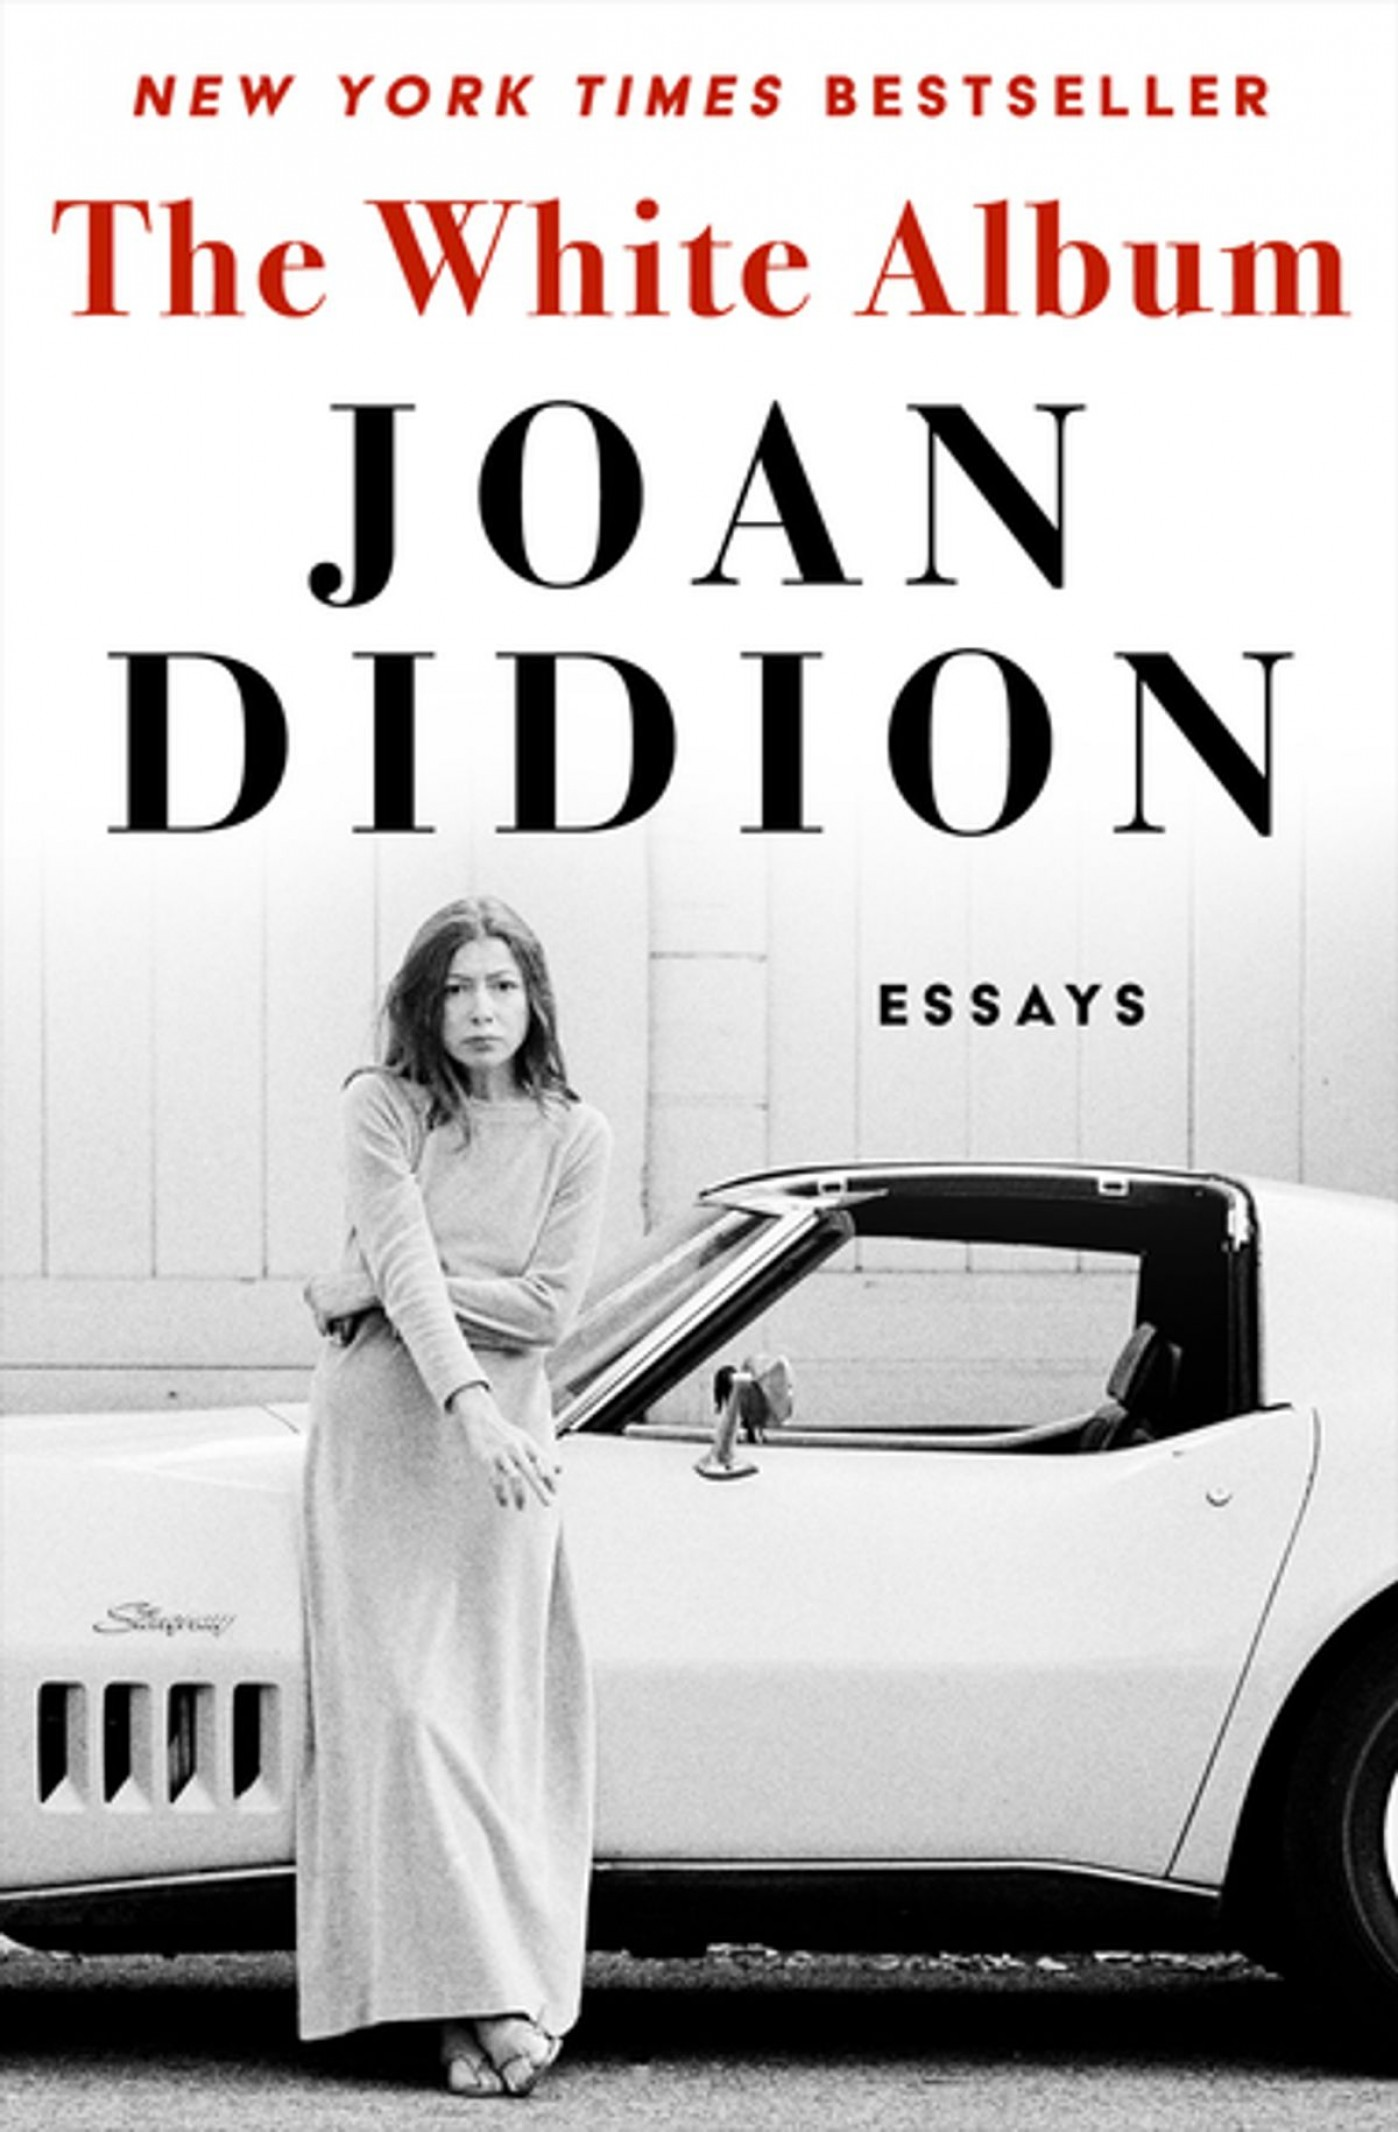 026 The White Album Essay Example Joan Didion Singular Essays Collections On Santa Ana Winds Amazon 1400